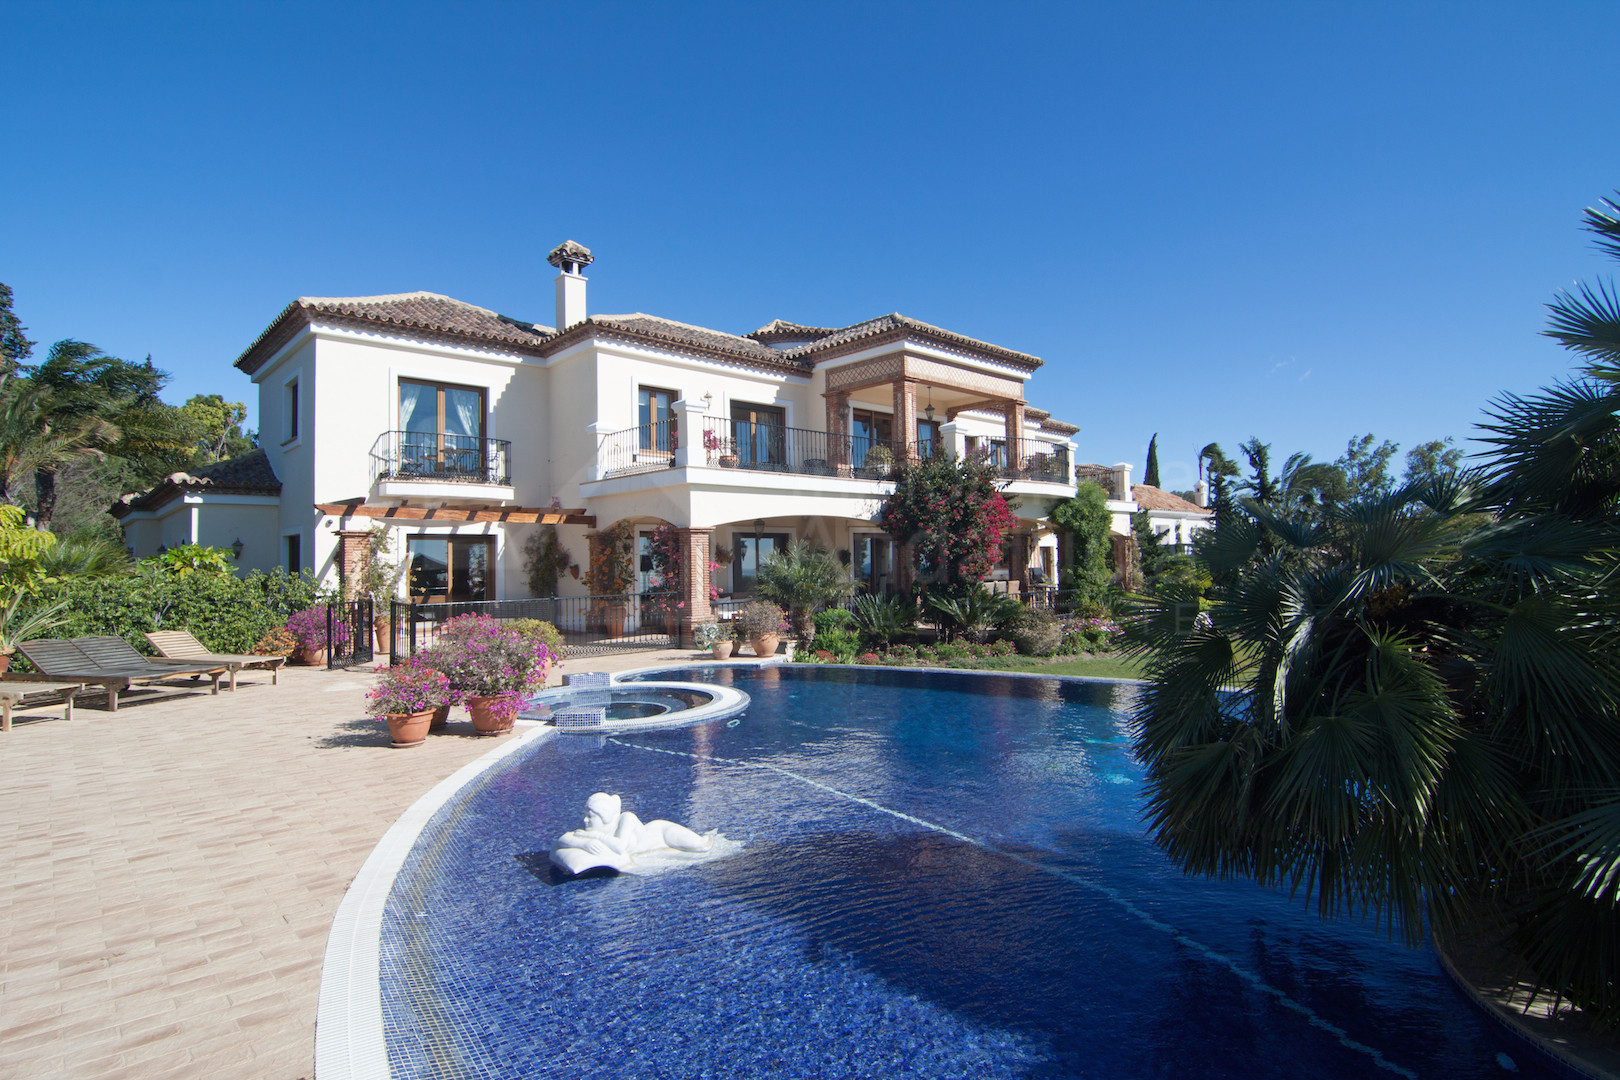 7 bedroom Andalusian Cortijo style villa with stunning sea views for sale in El Paraiso Alto